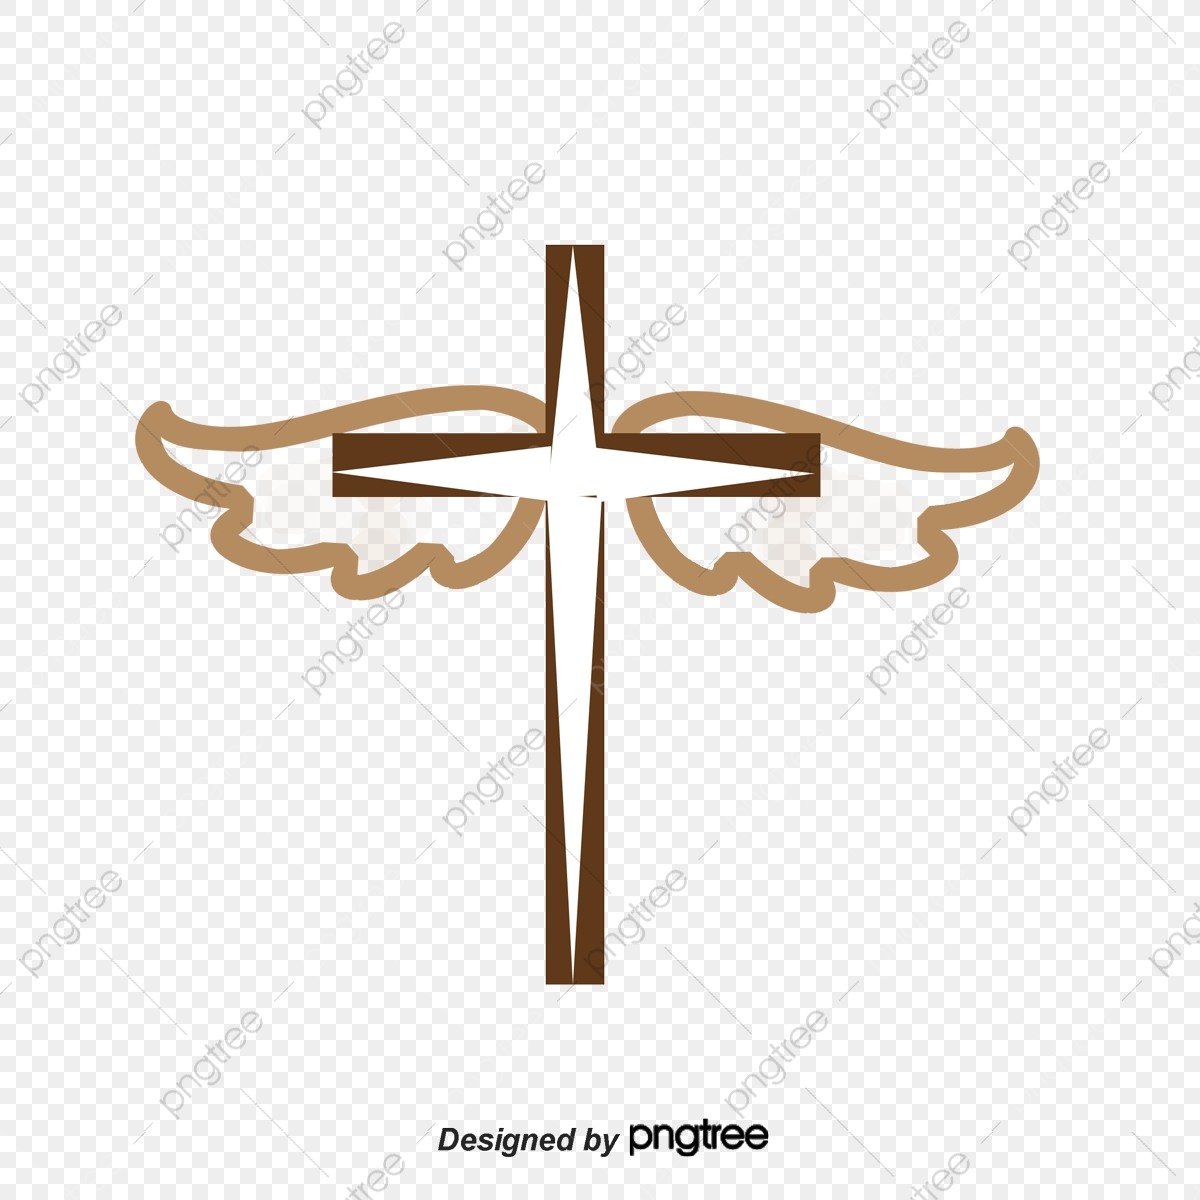 Free Drawings Of Crosses With Wings, Download Free Clip Art, Free Clip Art  on Clipart Library